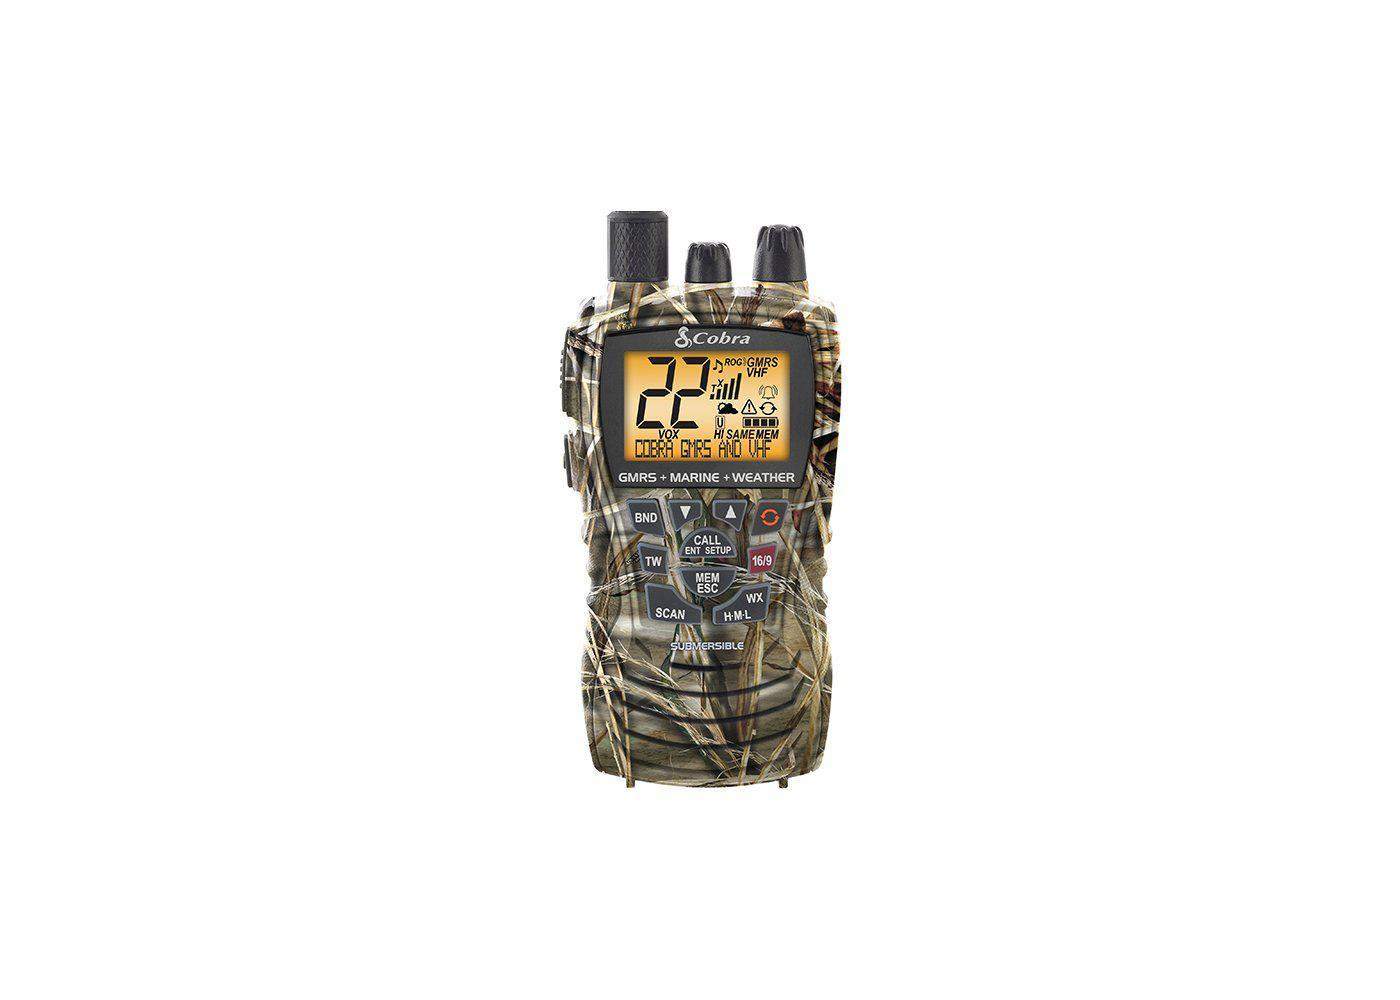 MR HH450 CAMO - All-Terrain-Radio RealTree Max 4 Camo - cobra.com